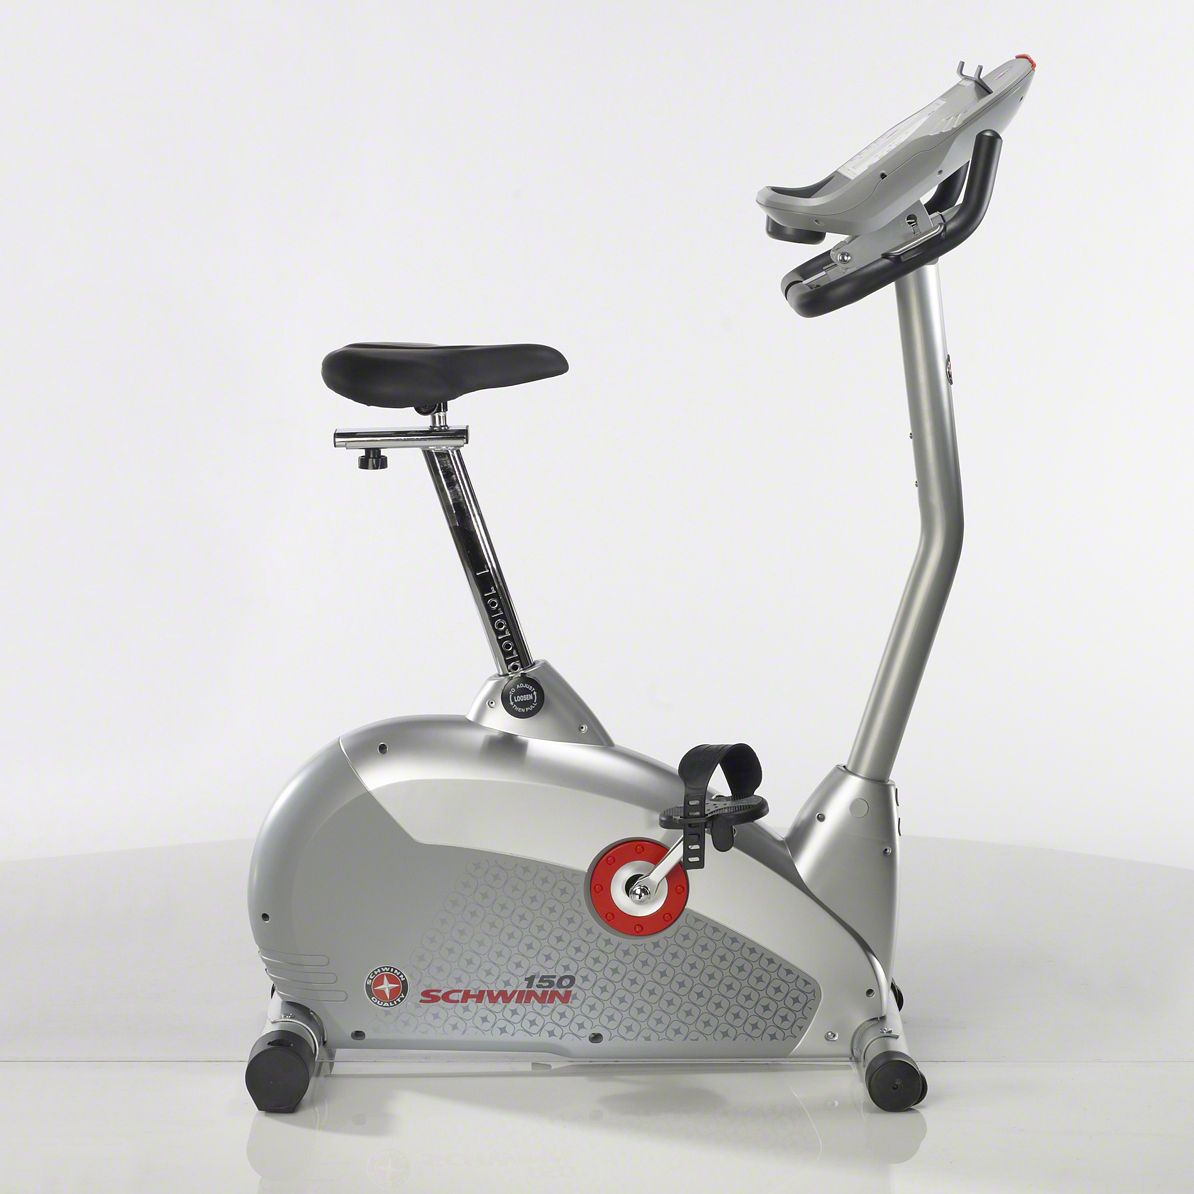 Schwinn 150 Upright Exercise Bike